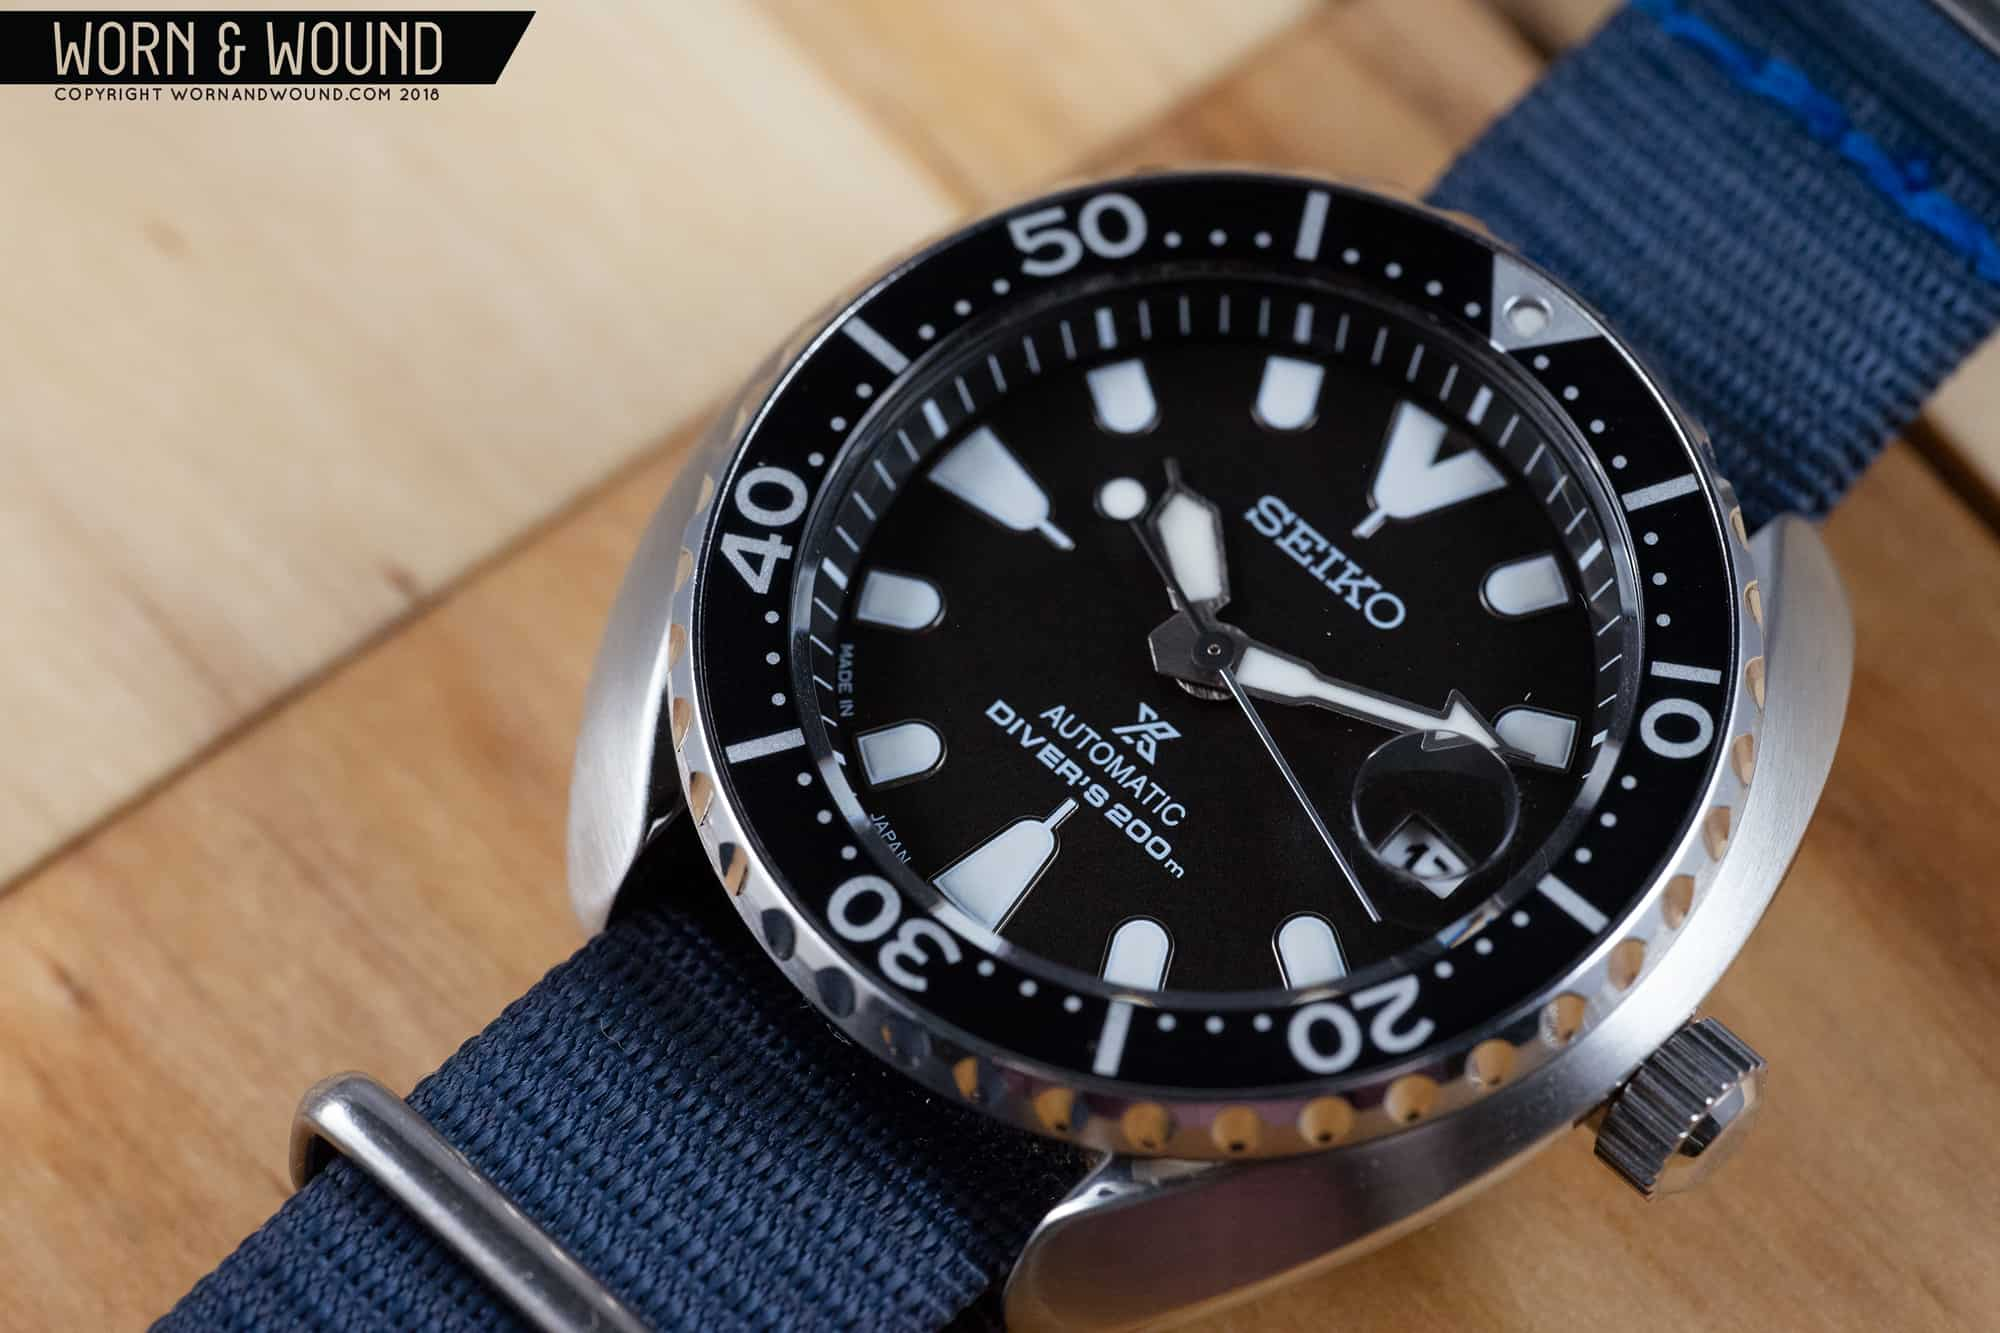 Seiko Srp Review Is The Seiko Mini Turtle The New Skx007 Worn Wound